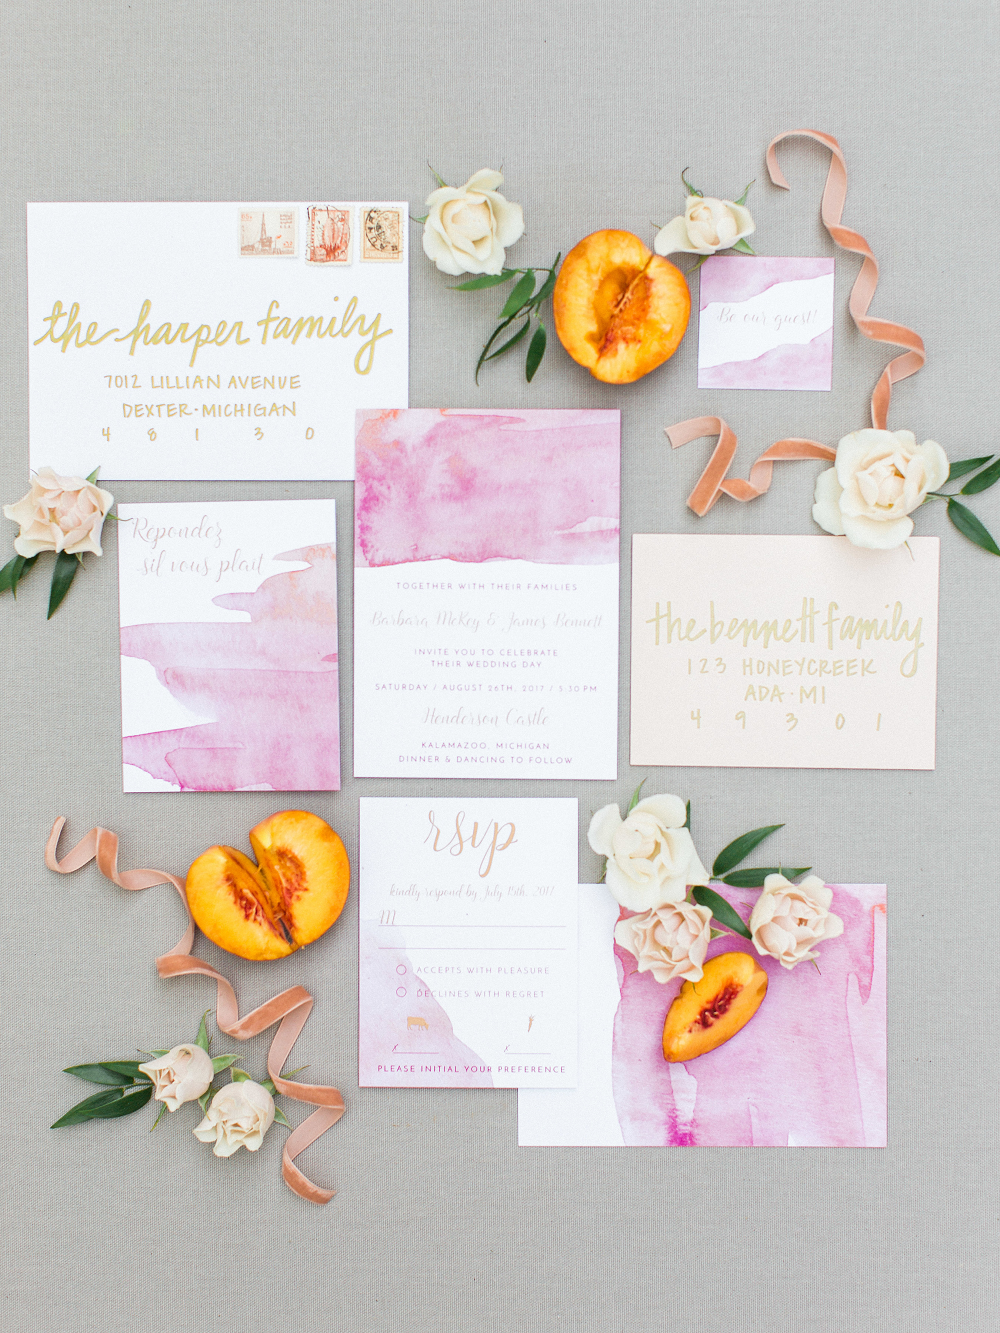 Whimsical Summer Wedding Styled Shoot at Henderson Castle Featured in WeddingDay Magazine Stationery